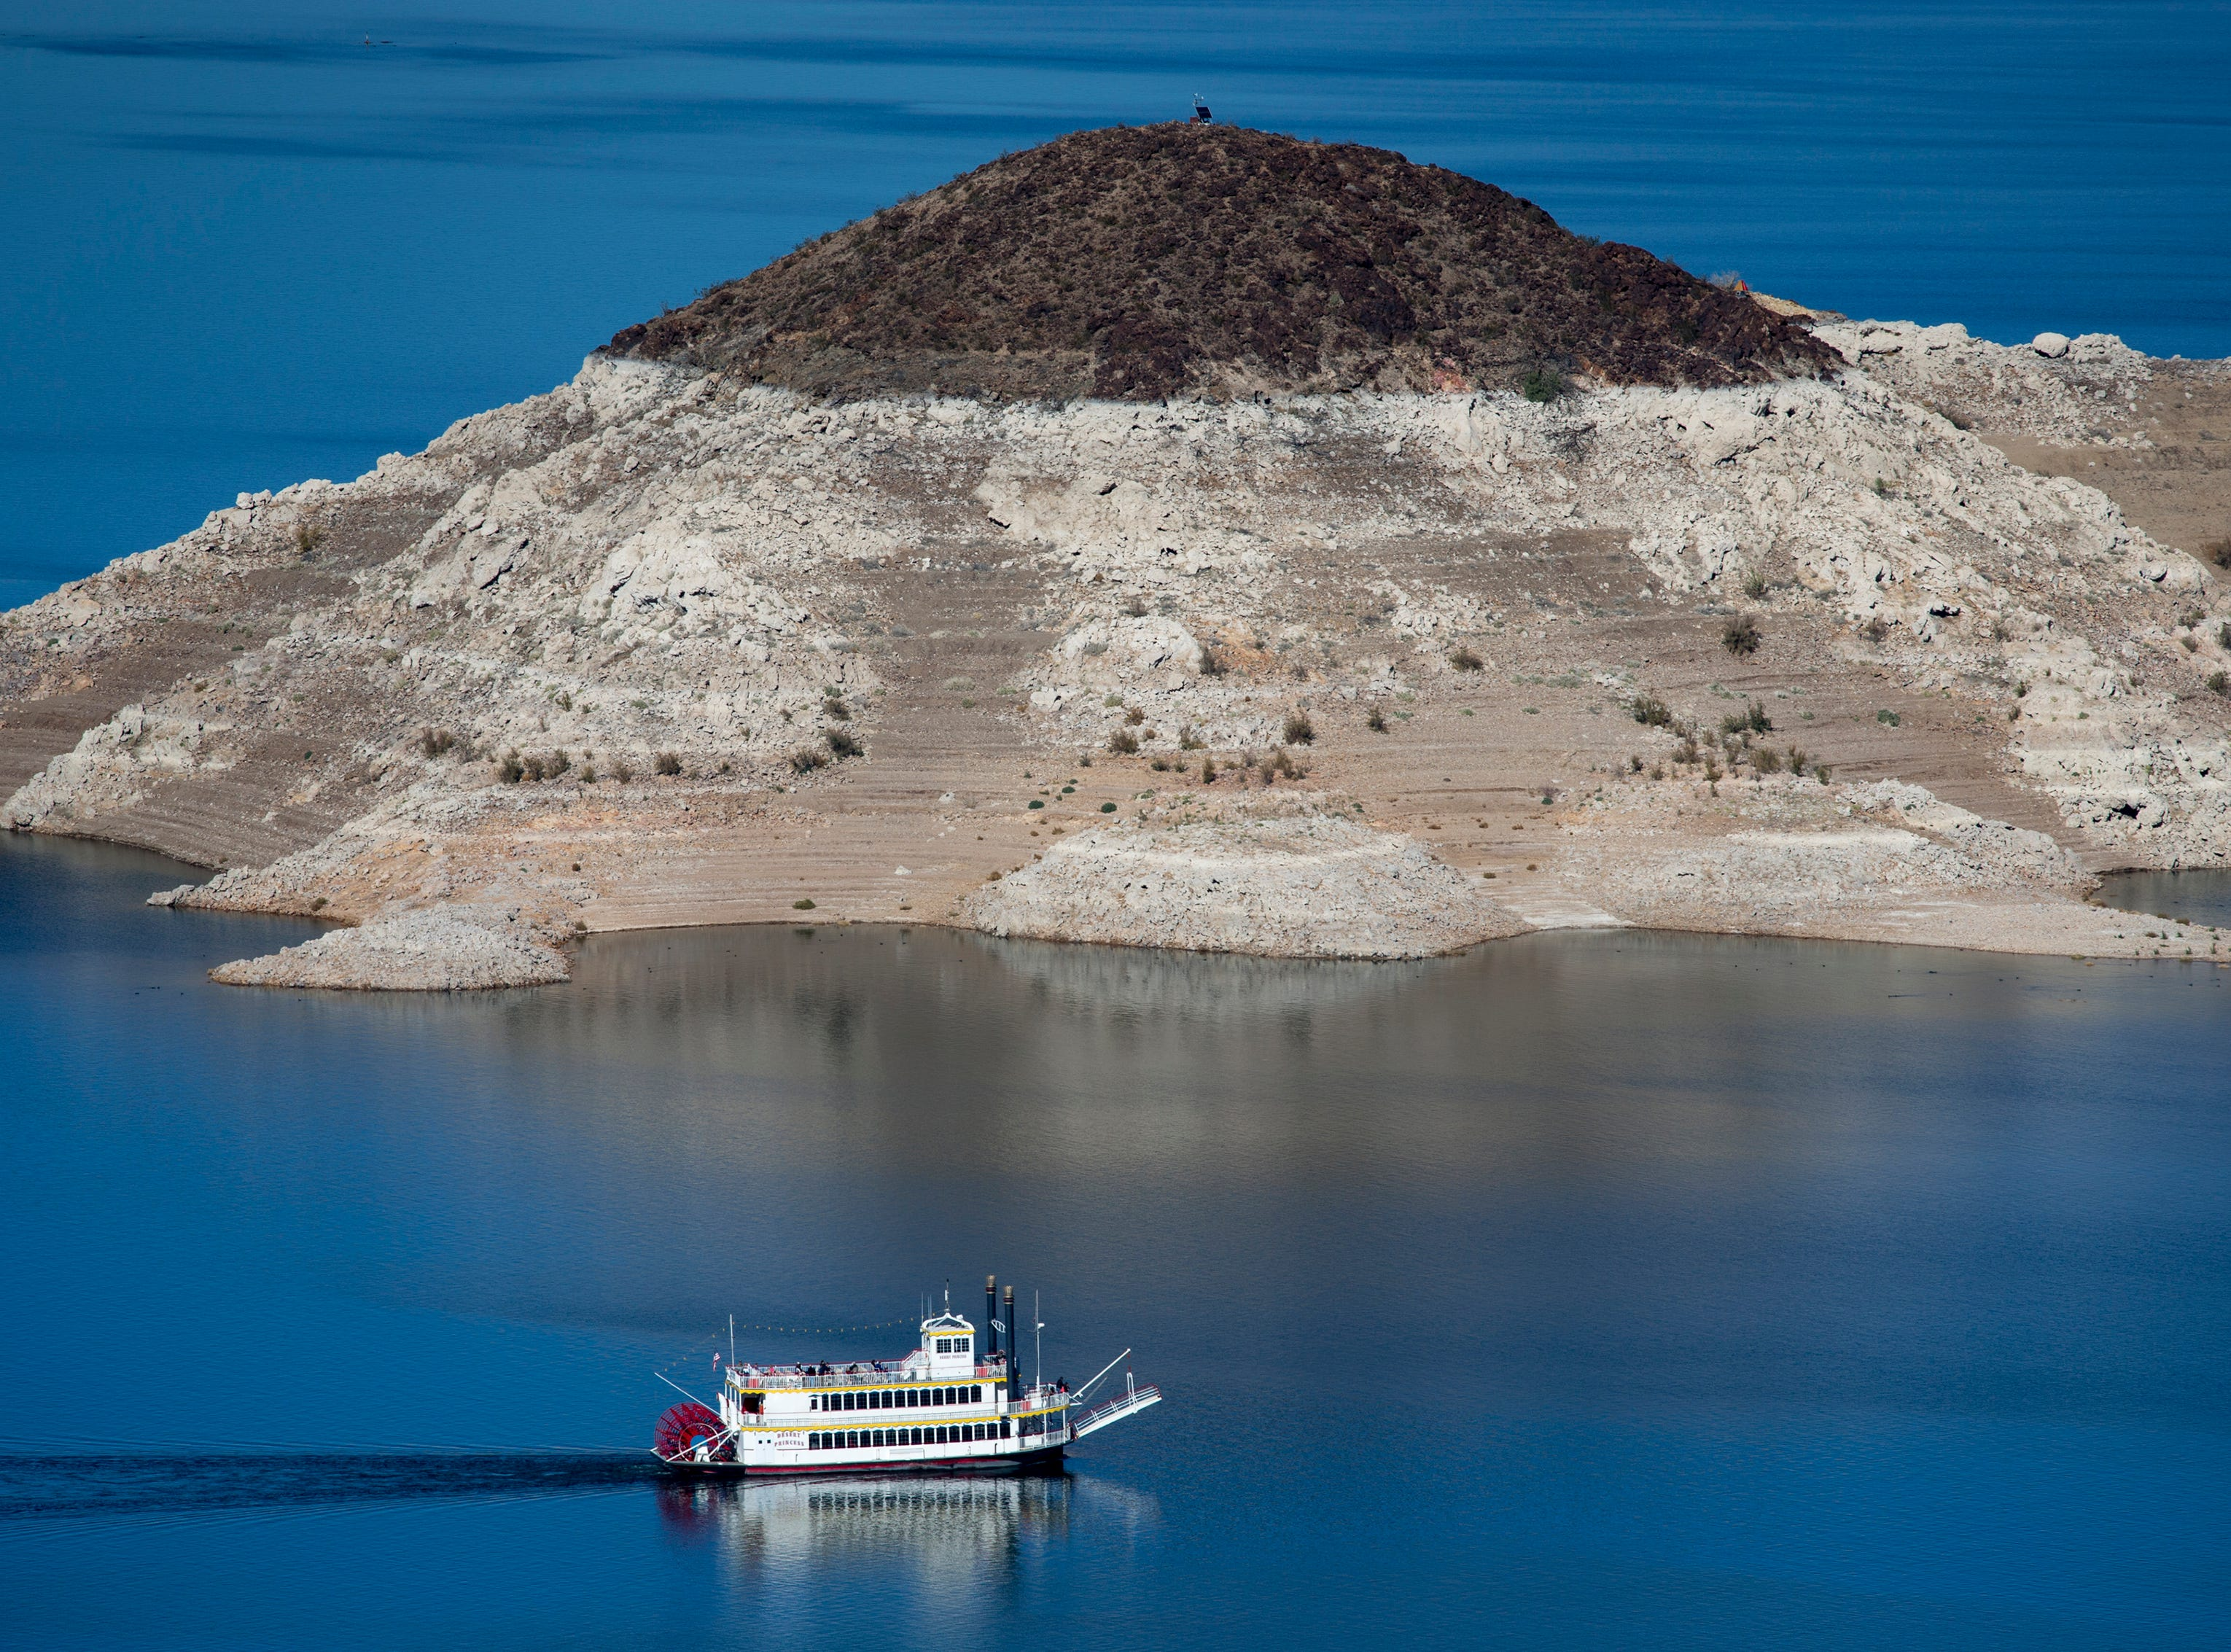 """The Desert Princess, a three-level paddle-wheeler, passes Rock Island, November 17, 2014, while leaving Hemenway Harbor on a mid-day sightseeing cruse.  A high-water mark or """"bathtub ring"""" is visible on the shoreline; Lake Mead is down over 145 vertical feet."""